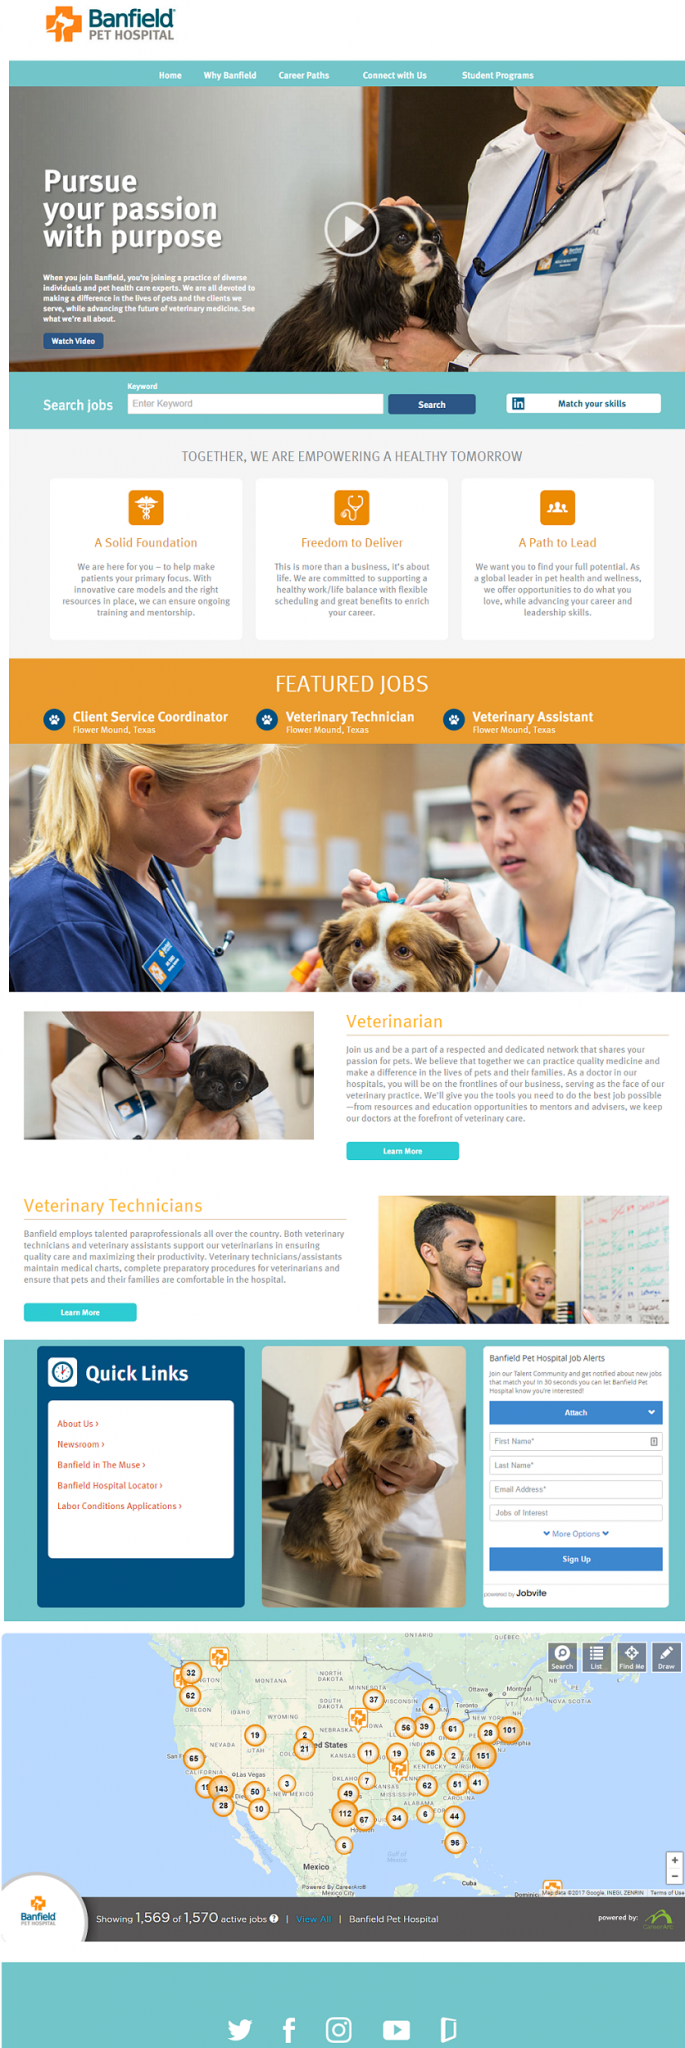 Best Company Career Sites Banfield Pet Hospital 2 - Ongig Blog